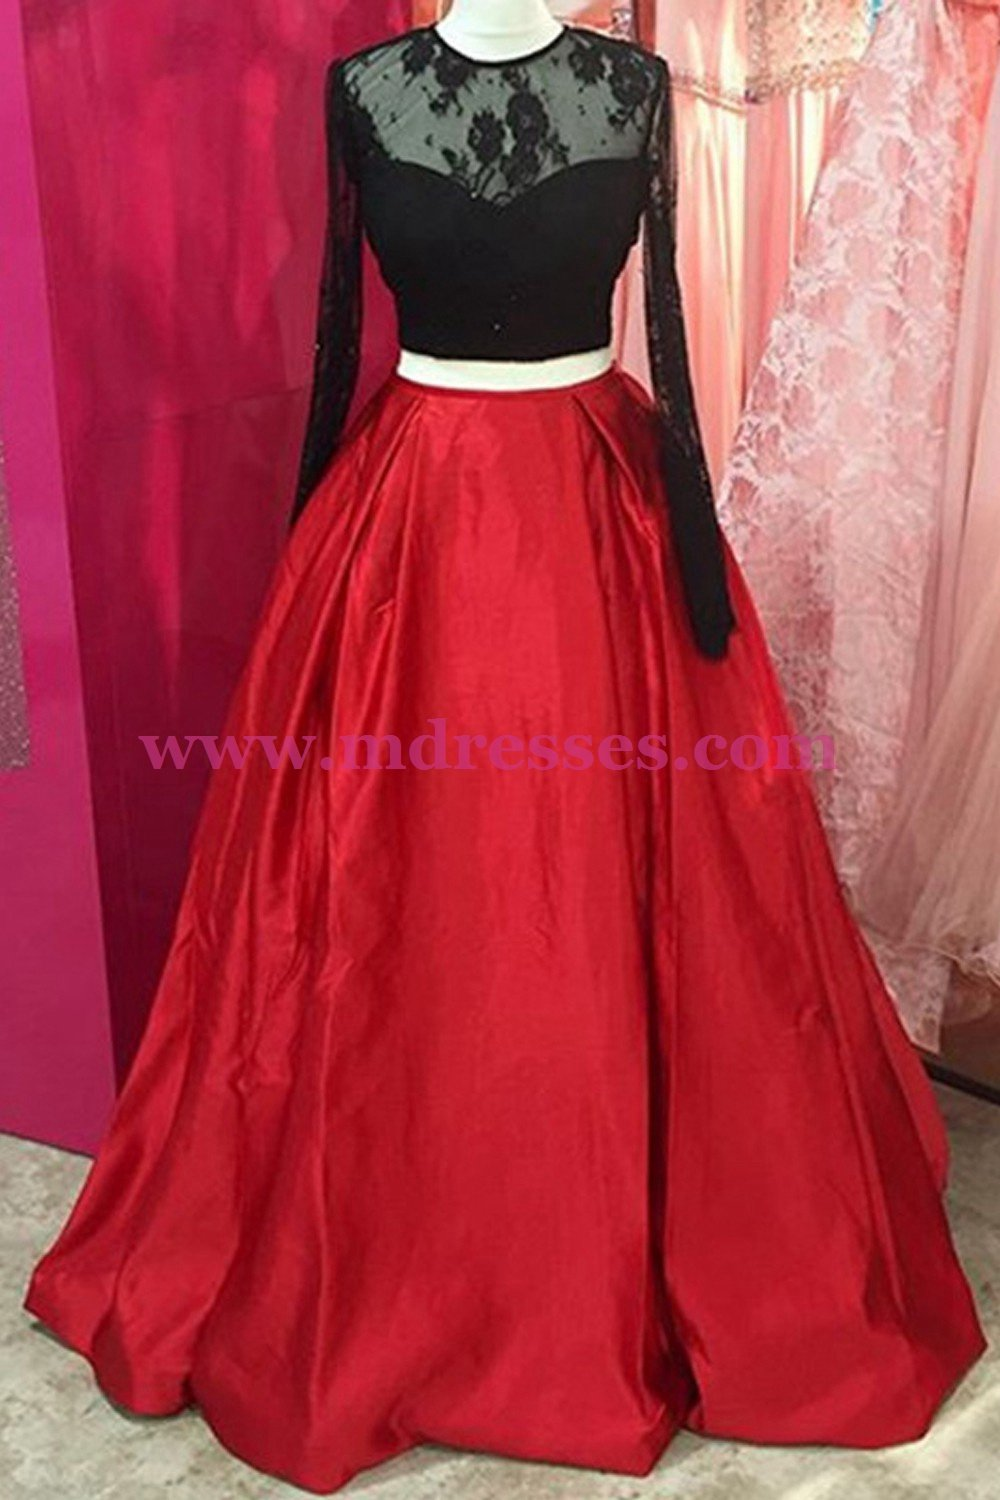 Two Pieces Long Sleeves Black Lace Red Prom Dresses Party Evening Gowns 299